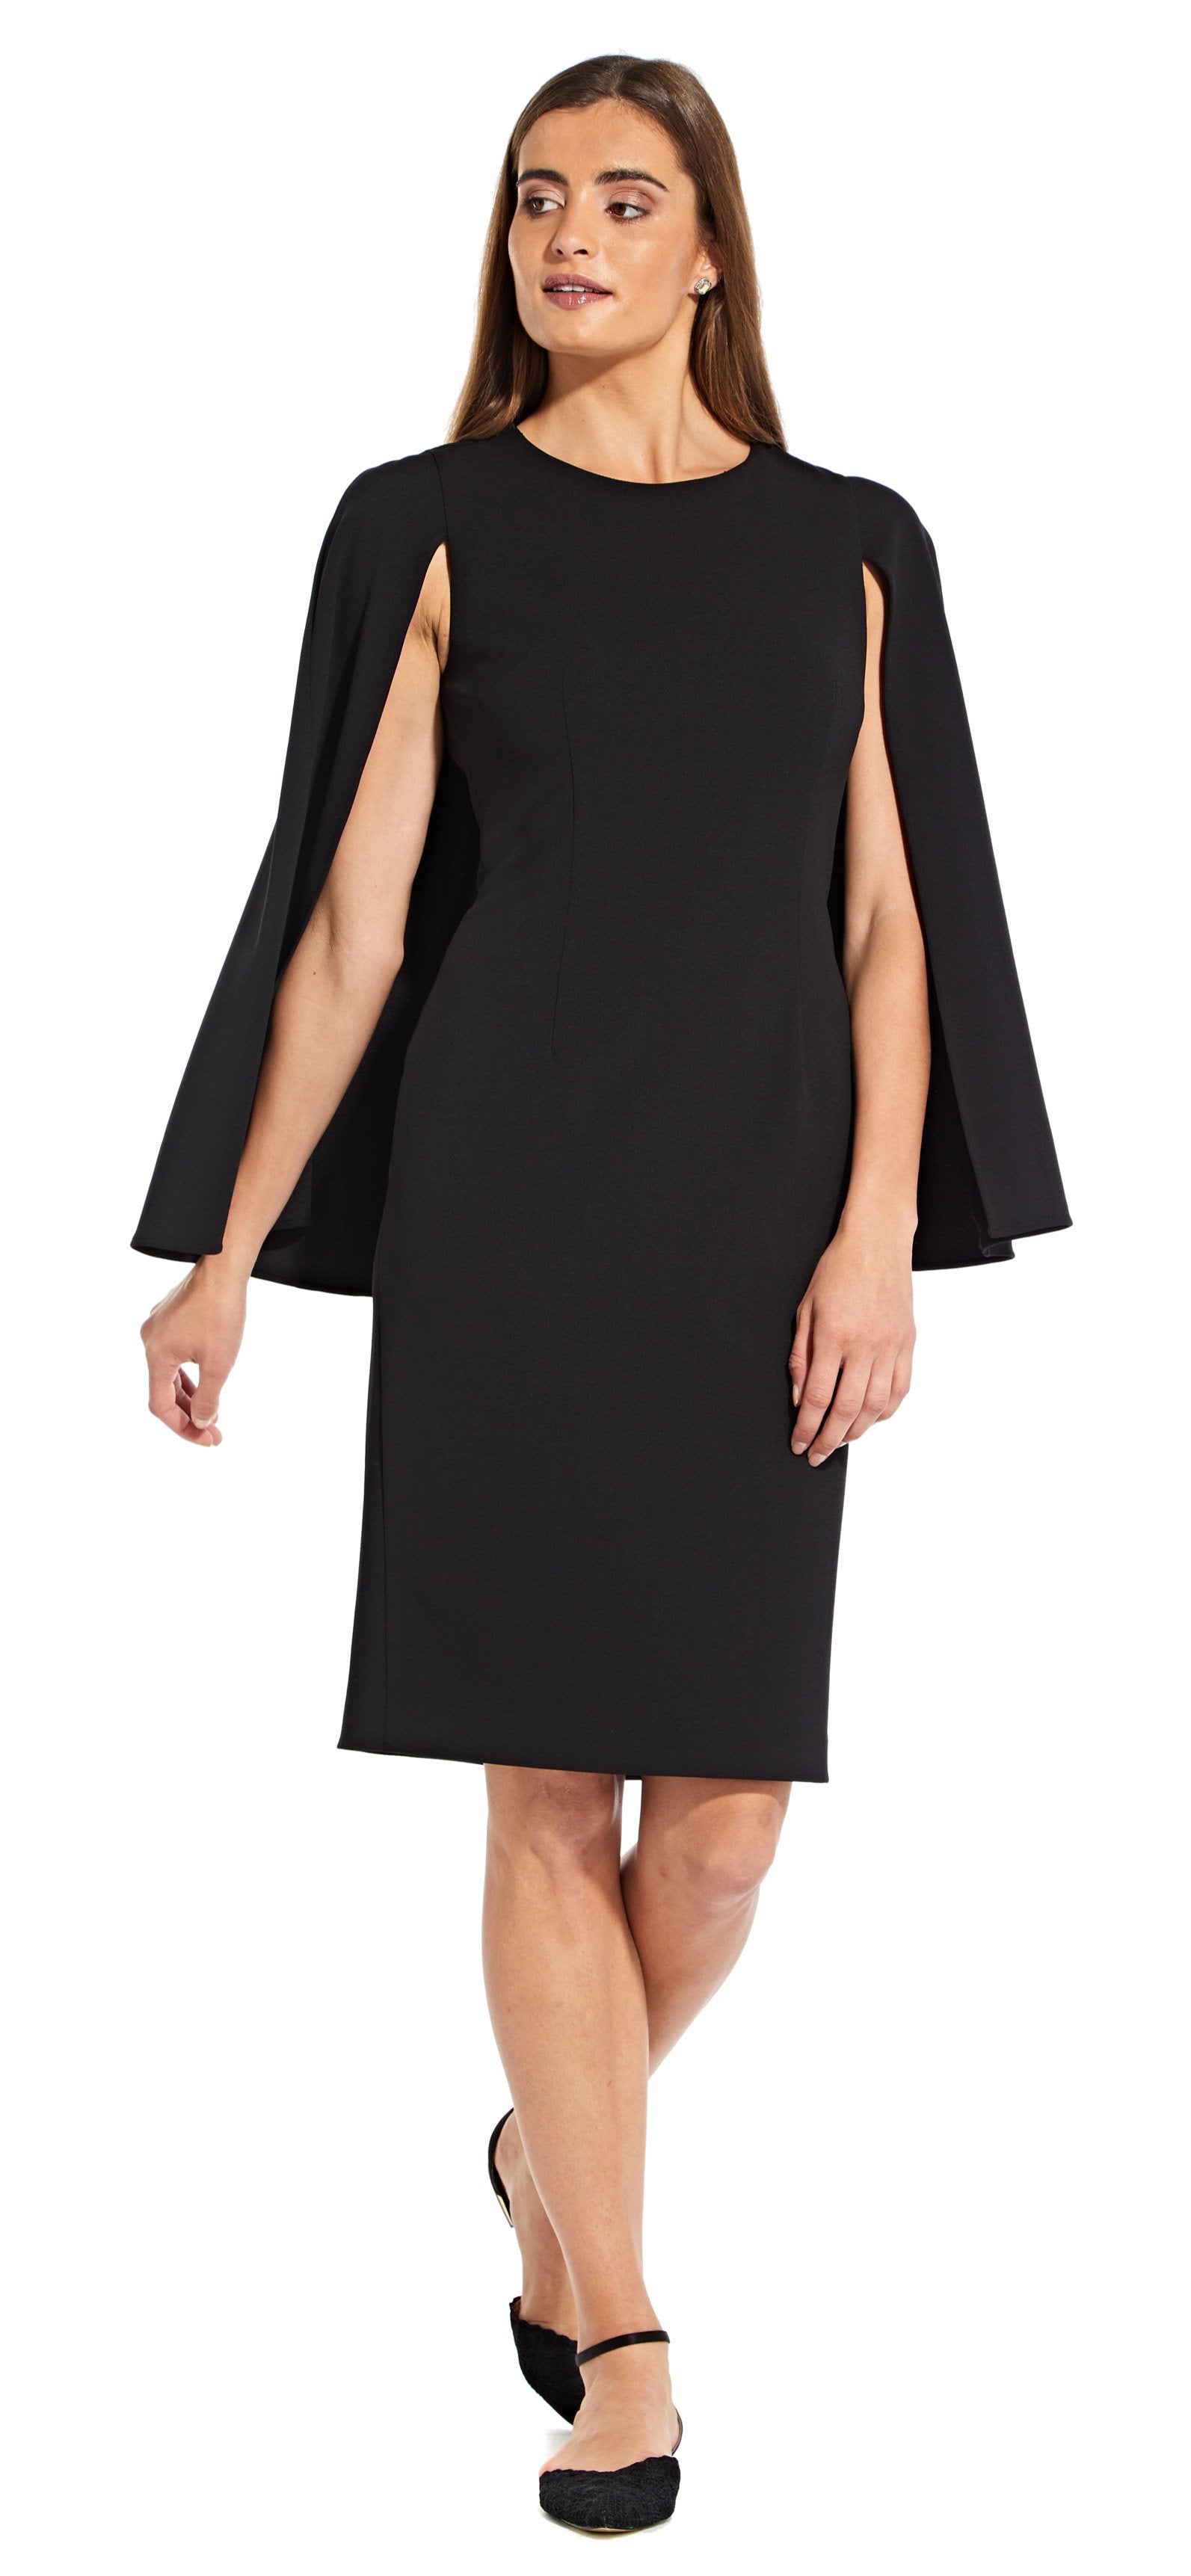 Adrianna Papell - AP1D103195 Jewel Cape Sleeve Cocktail Dress In Black